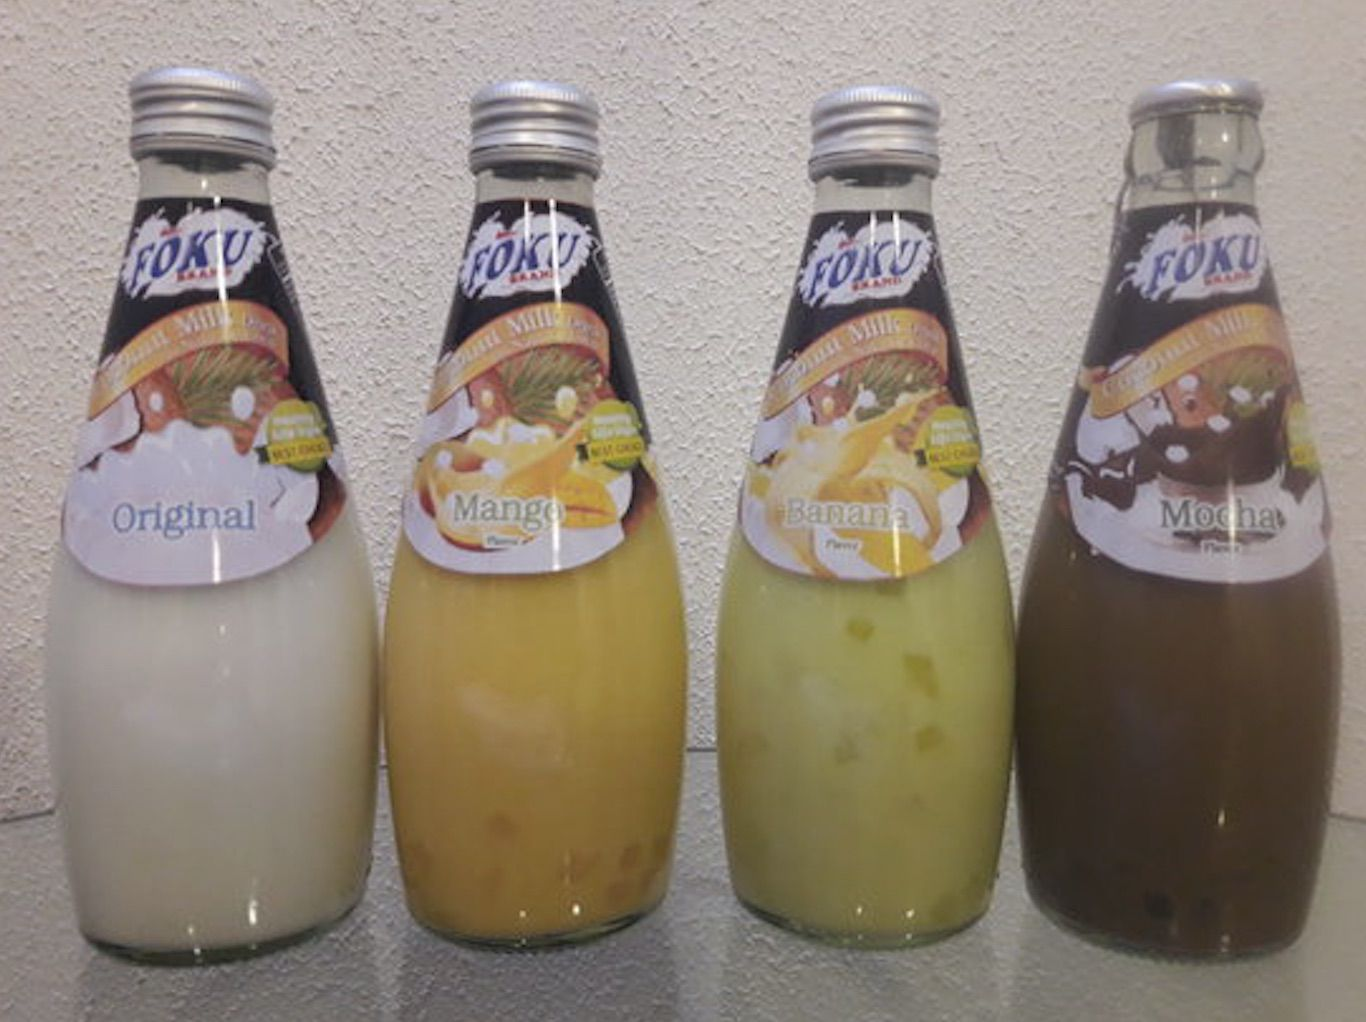 The Most Common Drinks in Thailand